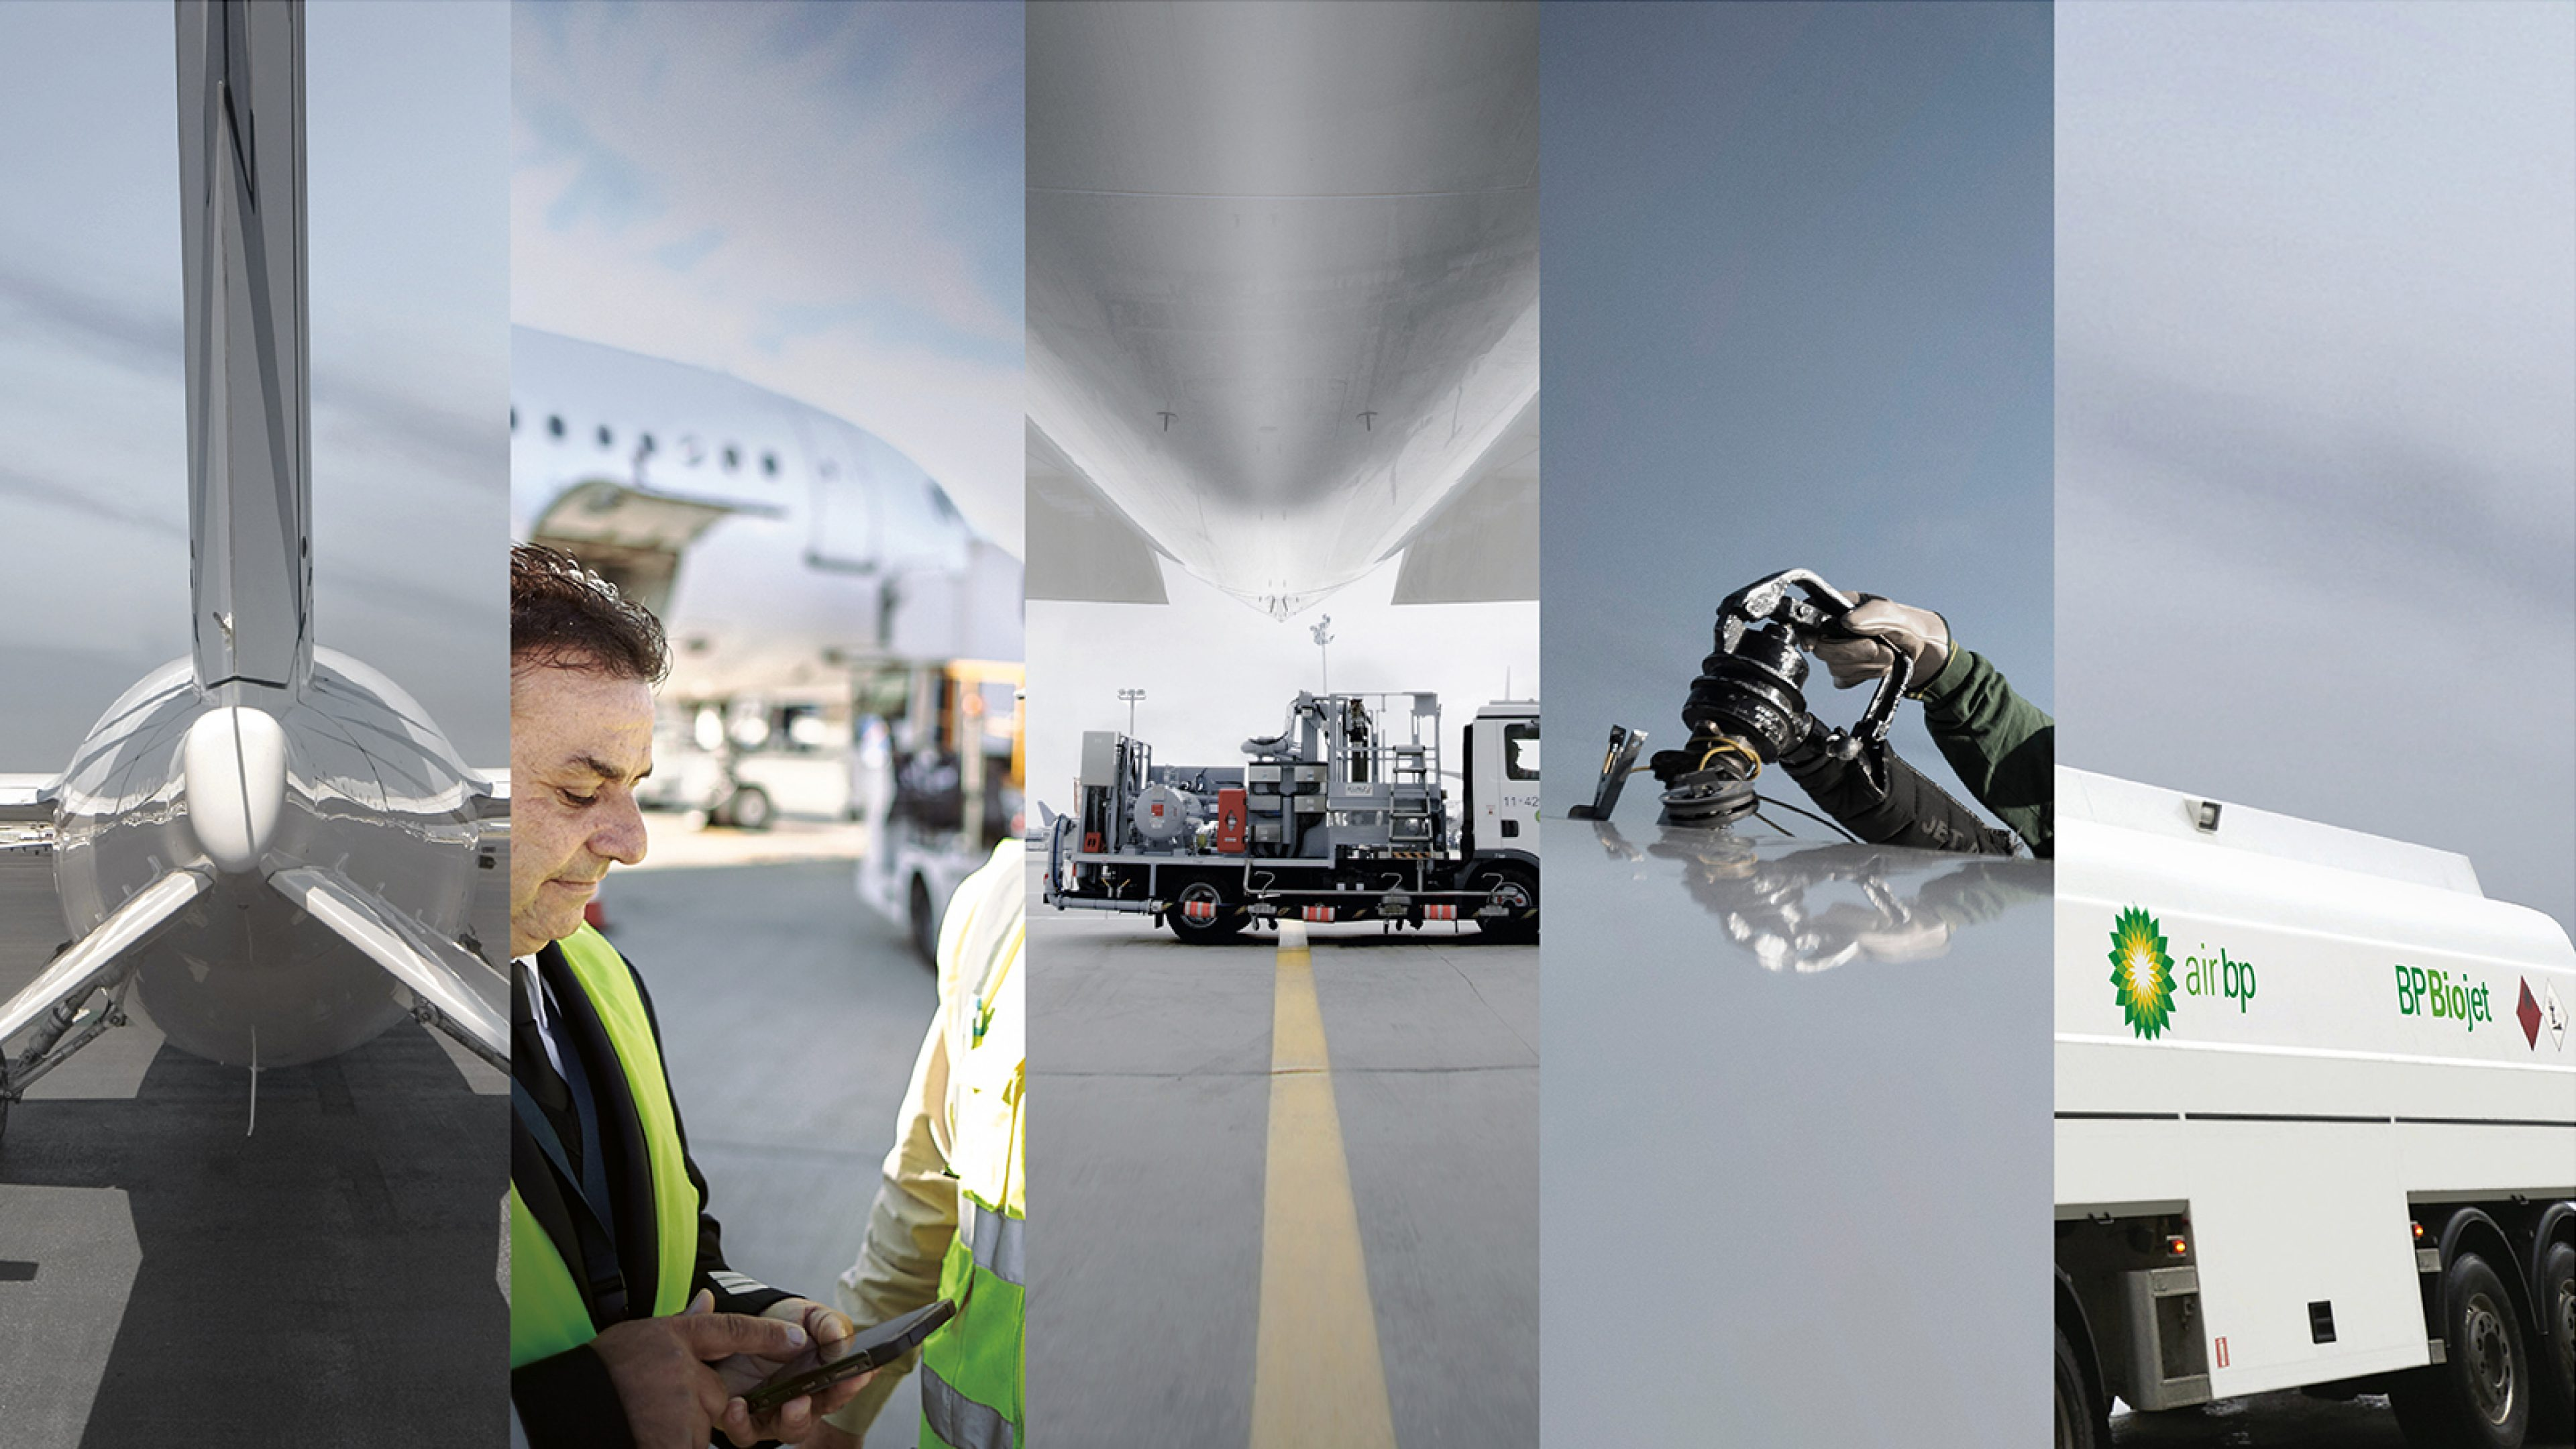 We are one of the world's largest aviation suppliers